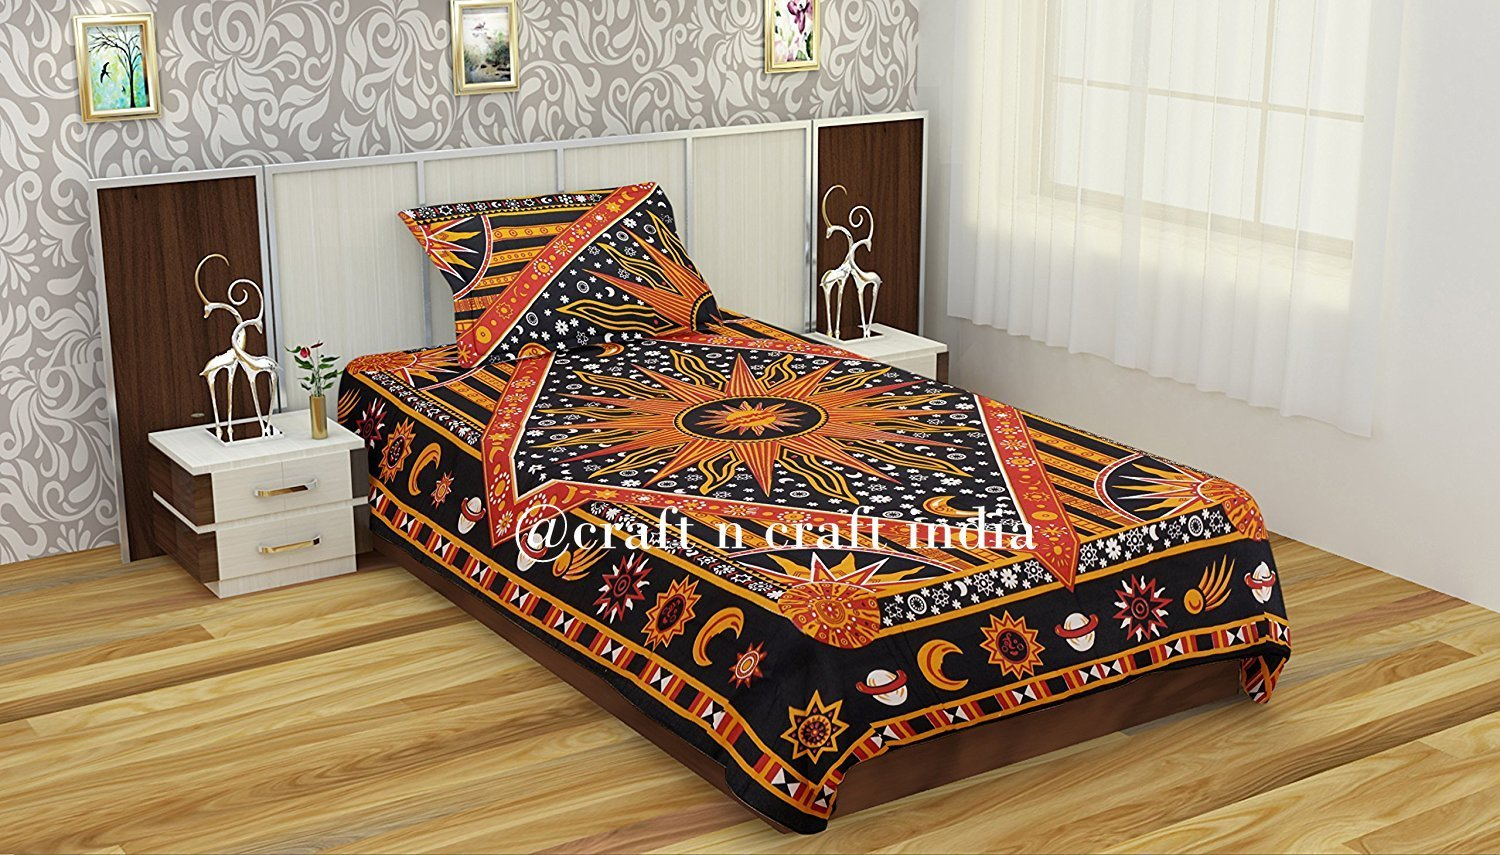 Duvet Cover Mandala Doona Cover Indian Cotton Quilt Cover Duvet Blanket Cover Throw Bedspread (Twin Size) New